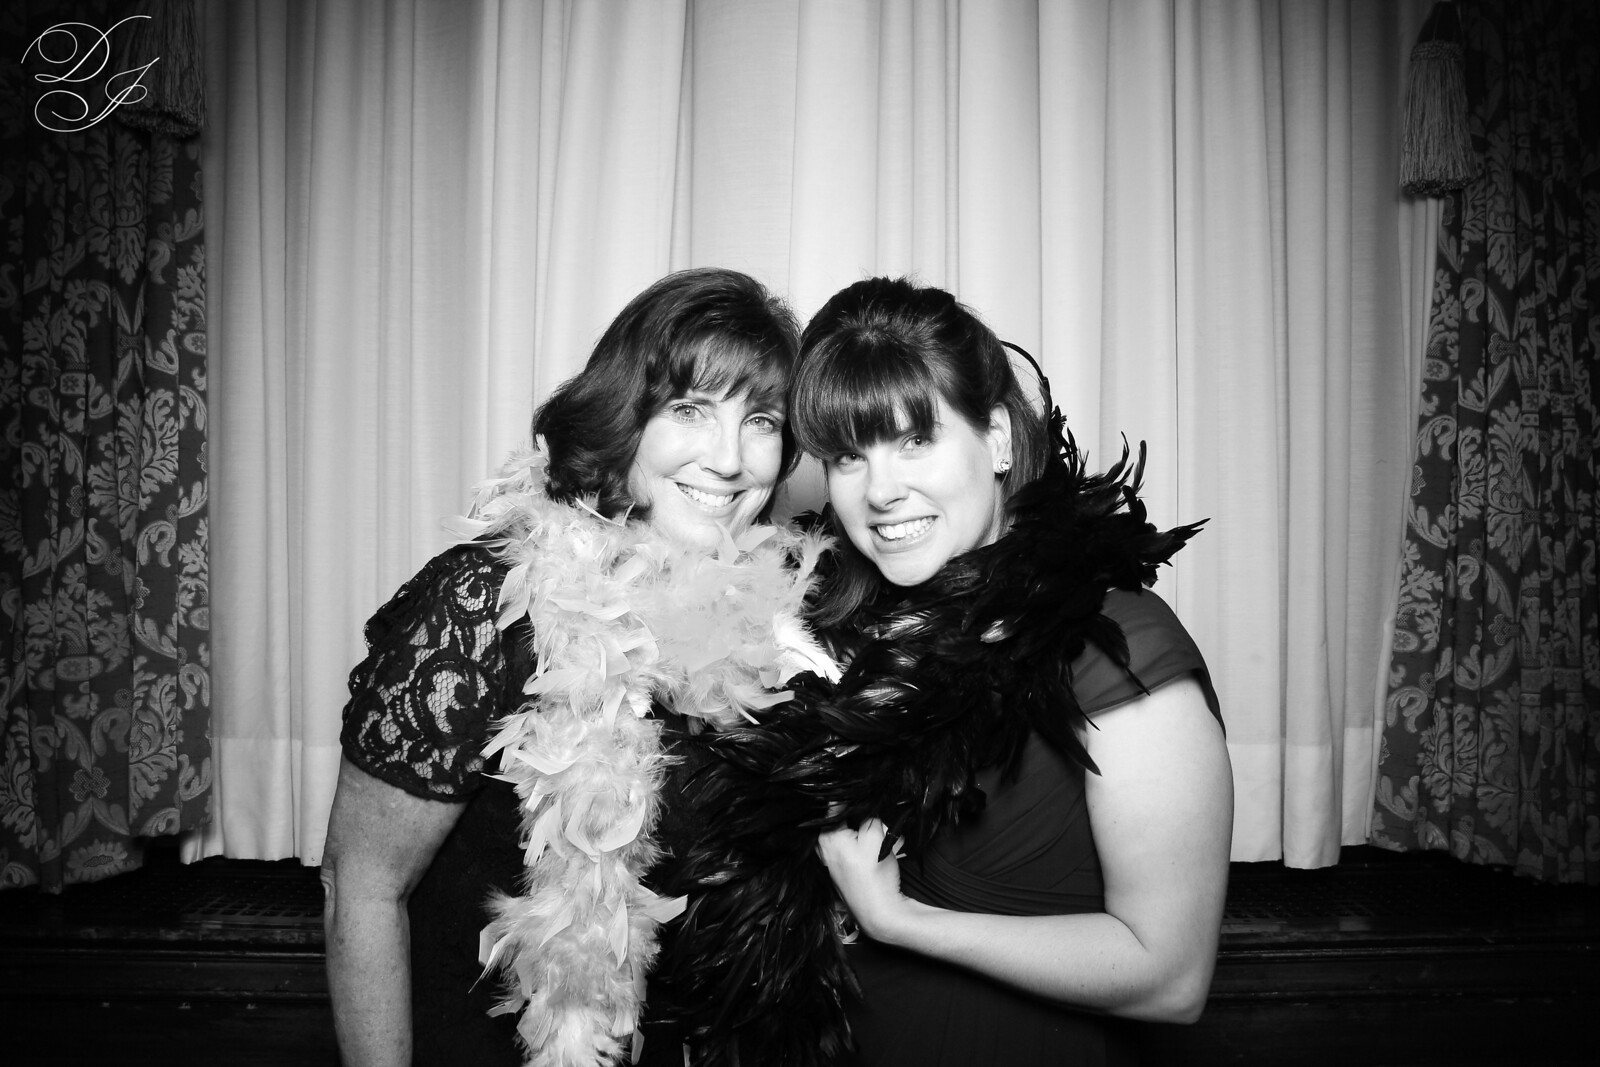 Chicago_Vintage_Wedding_Photobooth_Union_League_Club_06.jpg